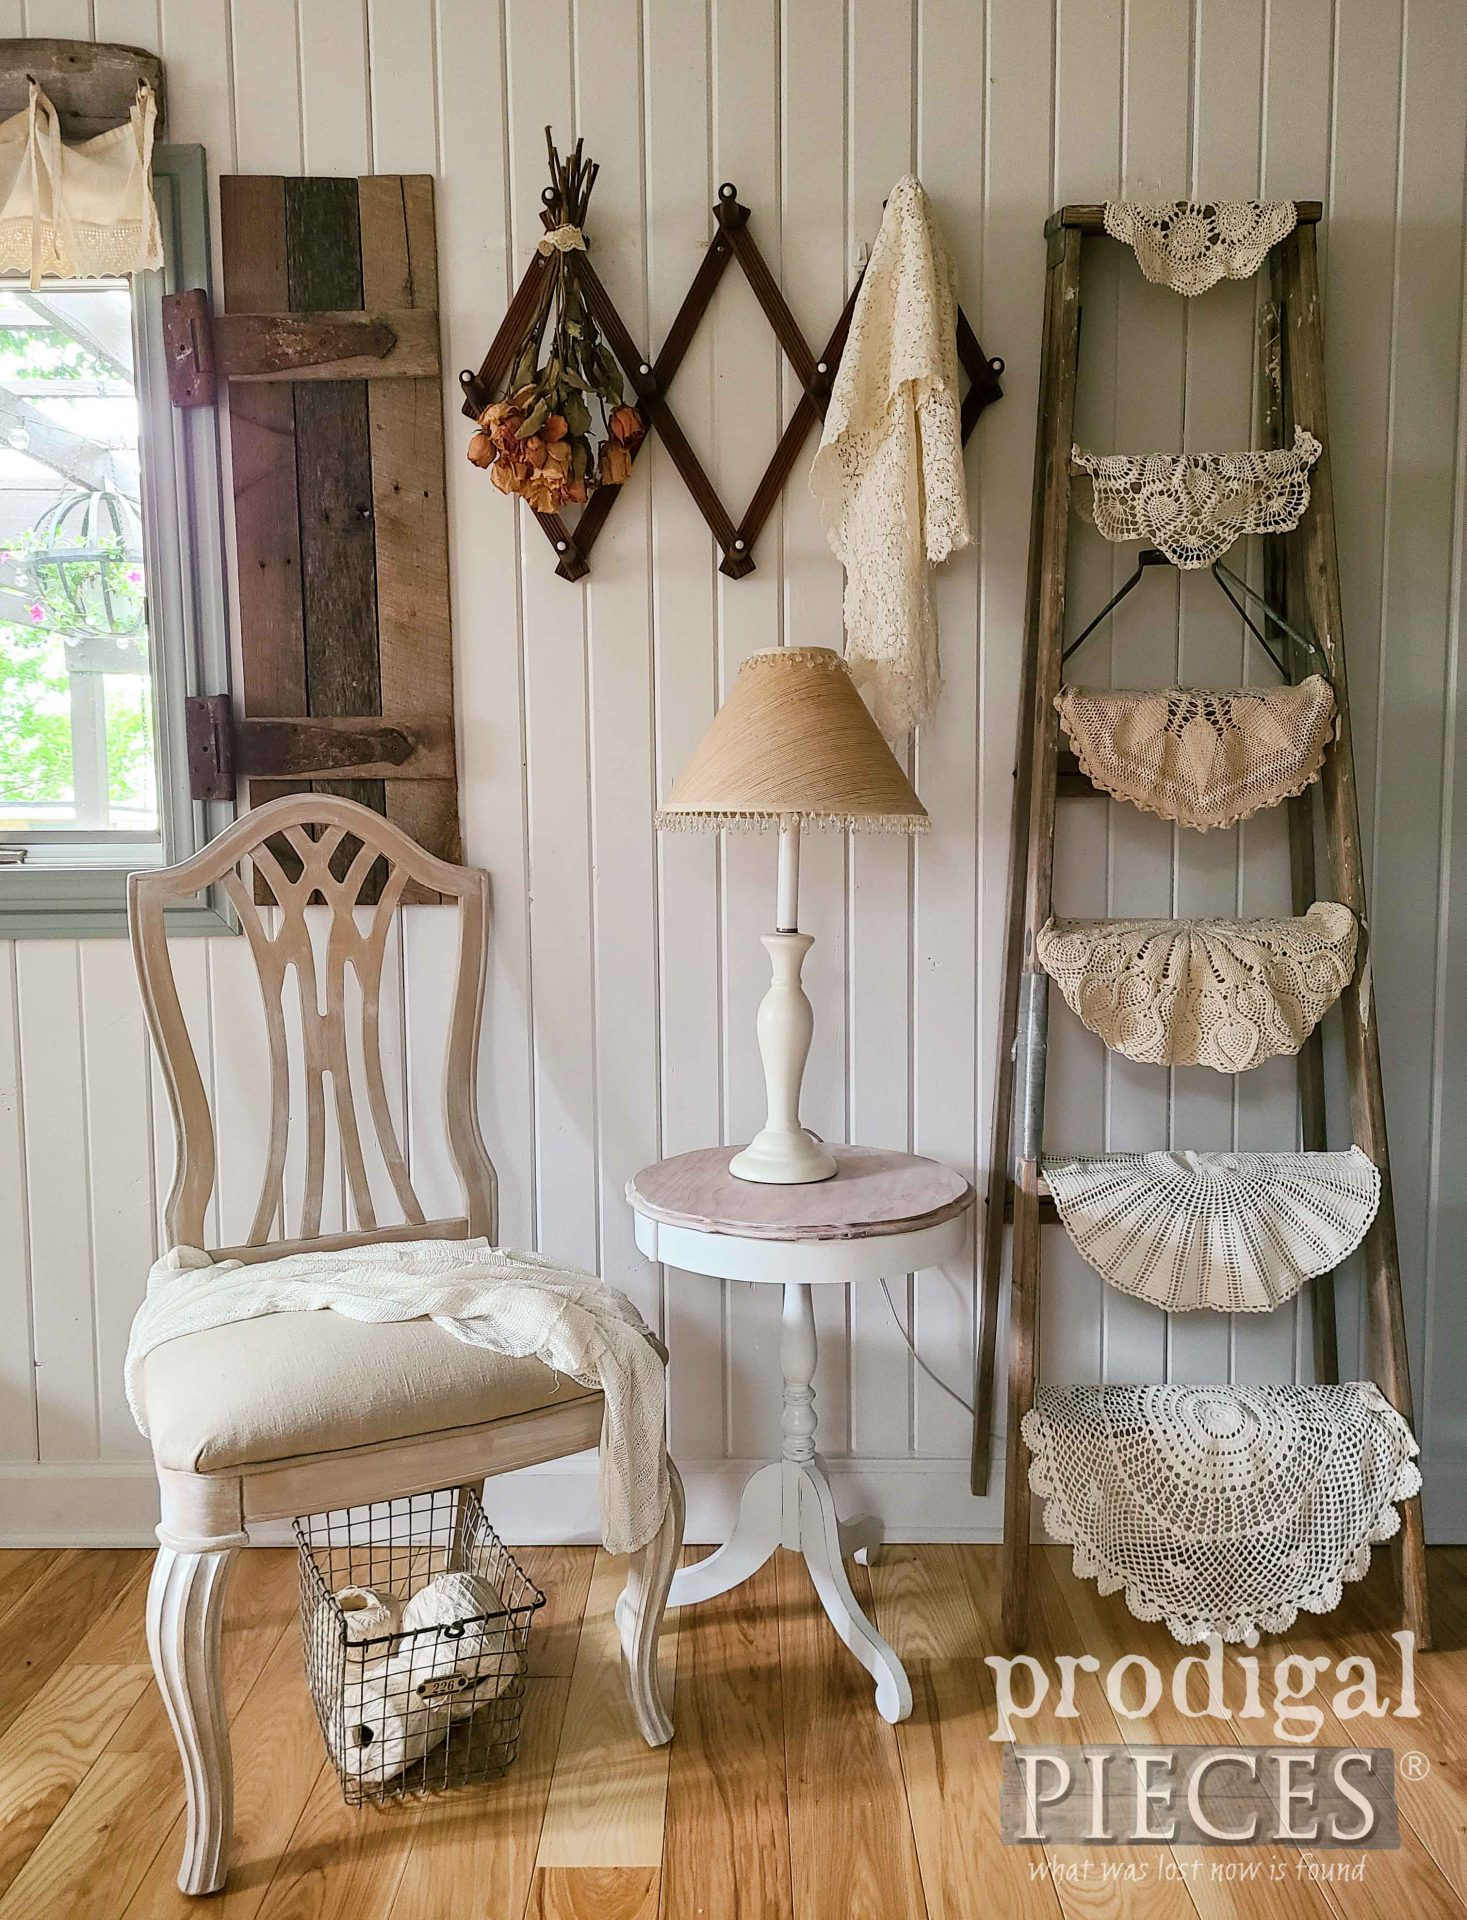 Simple Farmhouse Chic Decor with Curbside Finds by Larissa of Prodigal Pieces | prodigalpieces.com #prodigalpieces #farmhouse #diy #home #homedecor #vintage